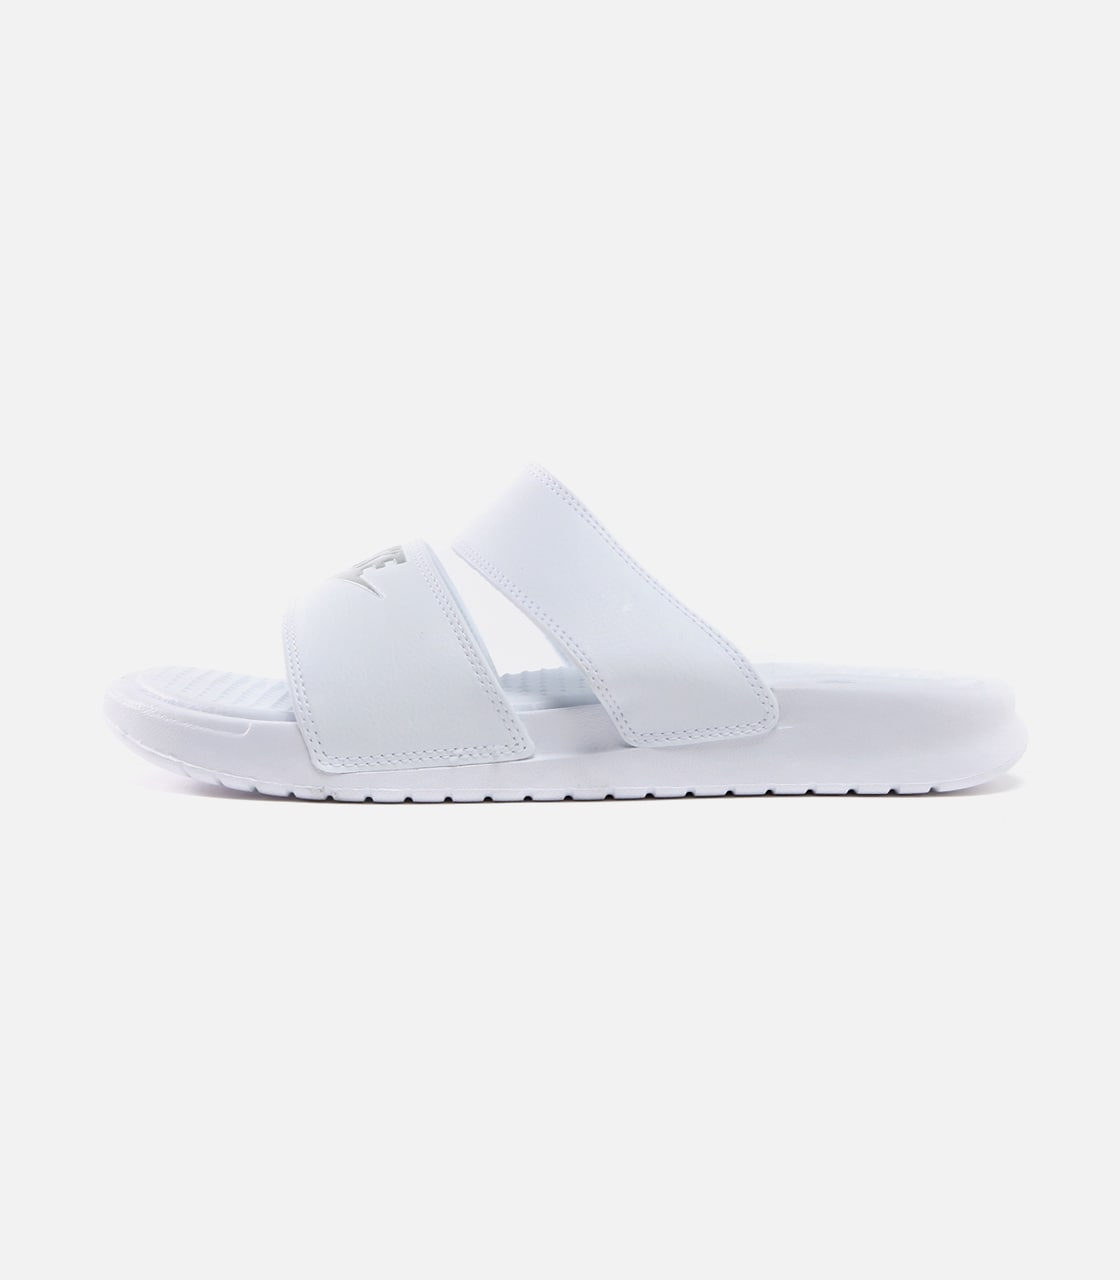 【AZUL BY MOUSSY】WIMNS NIKE BENASSI DUO ULTRA SLIDE 詳細画像 WHT 2